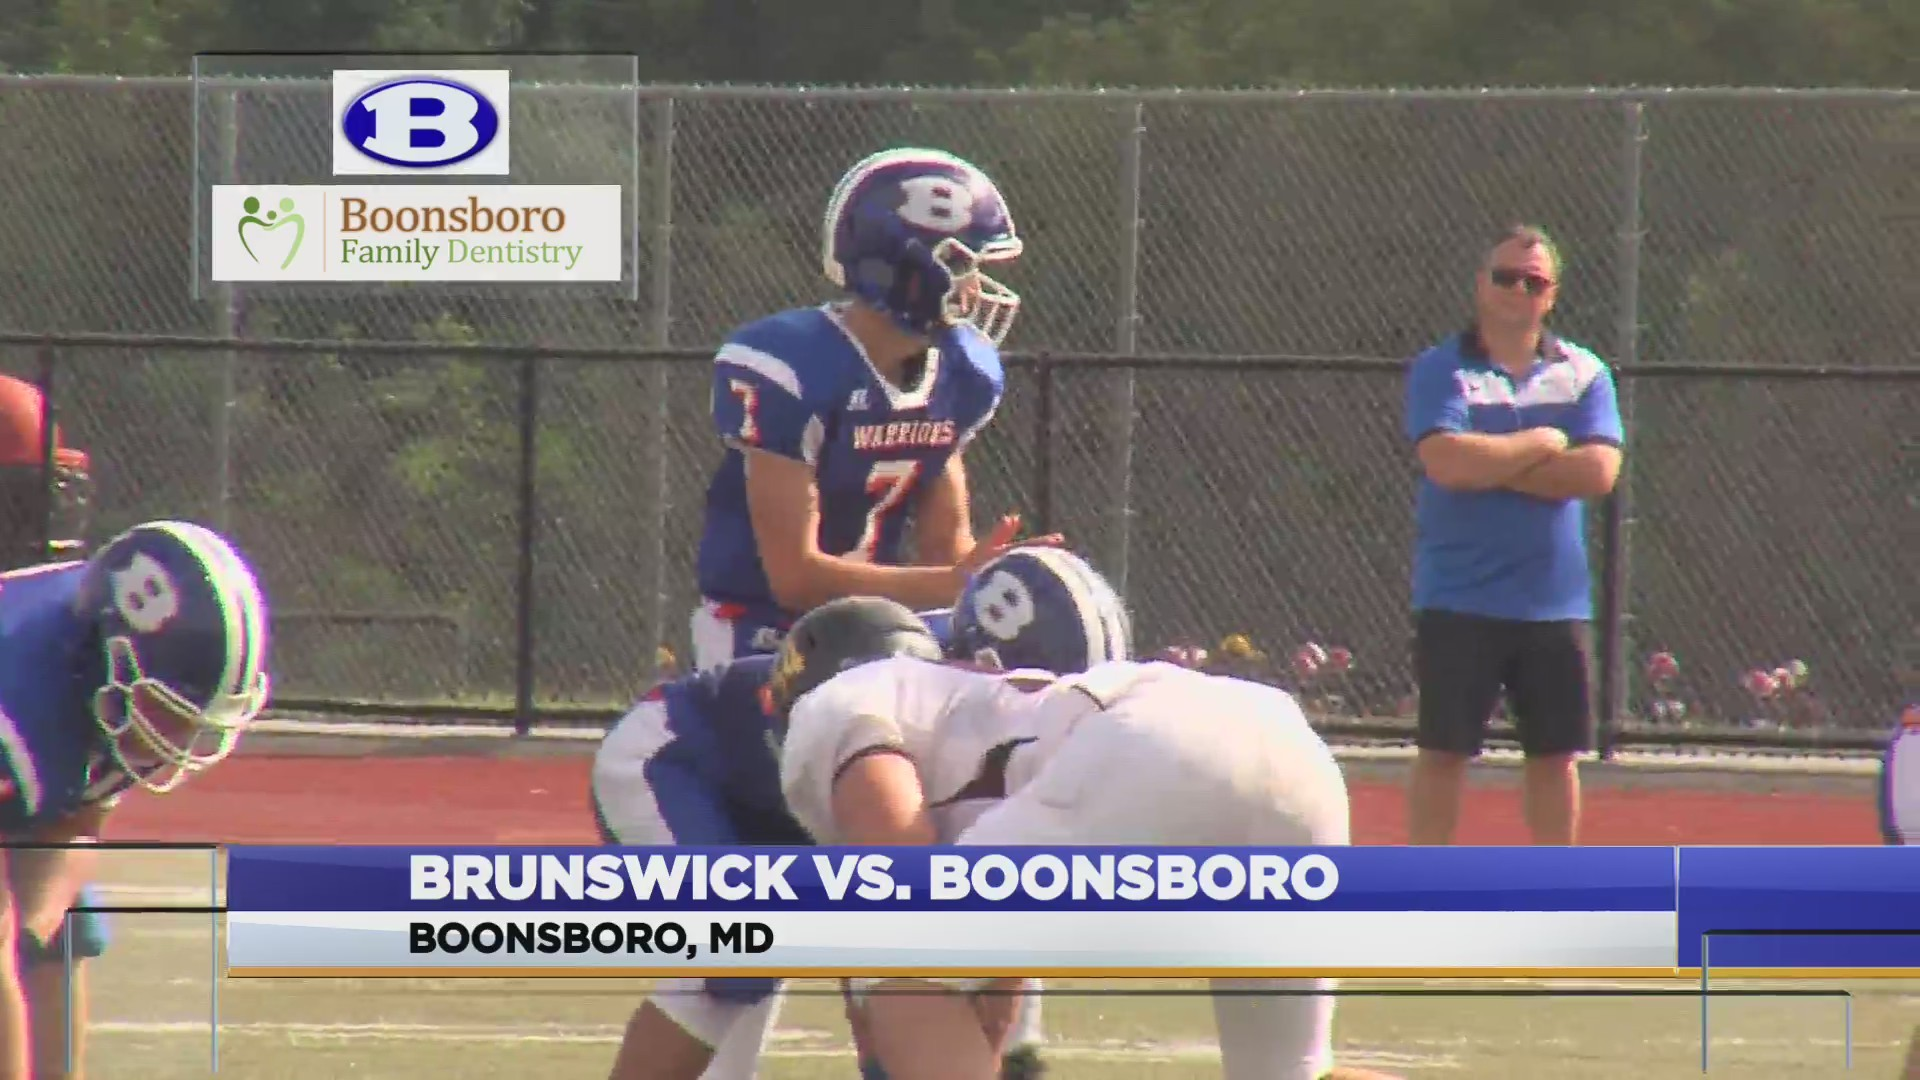 Brunswick_vs__Boonsboro_0_20180915233538